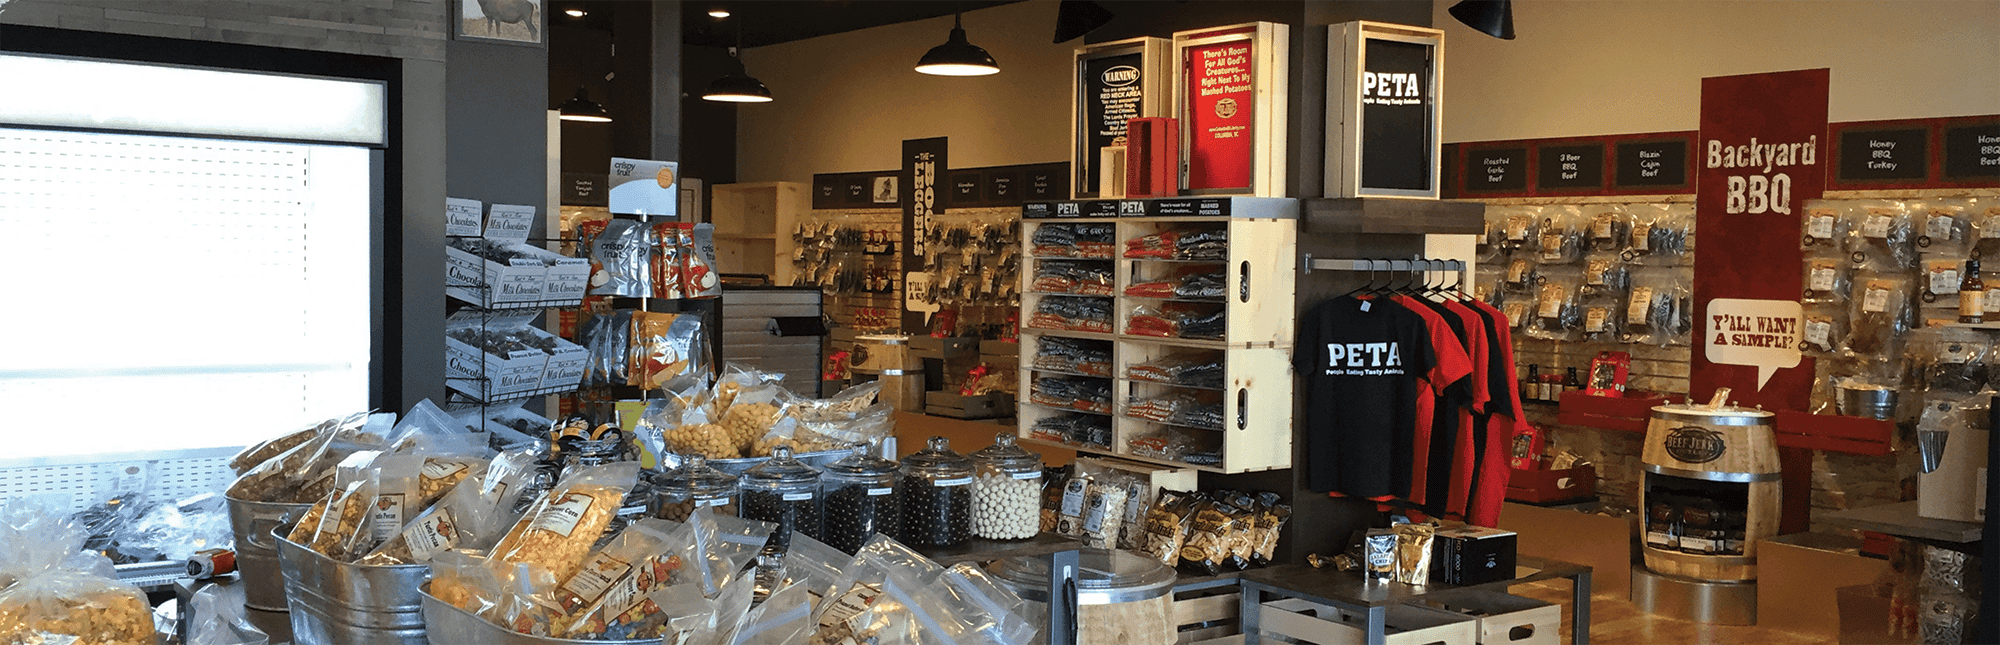 beef jerky outlet in store with goods